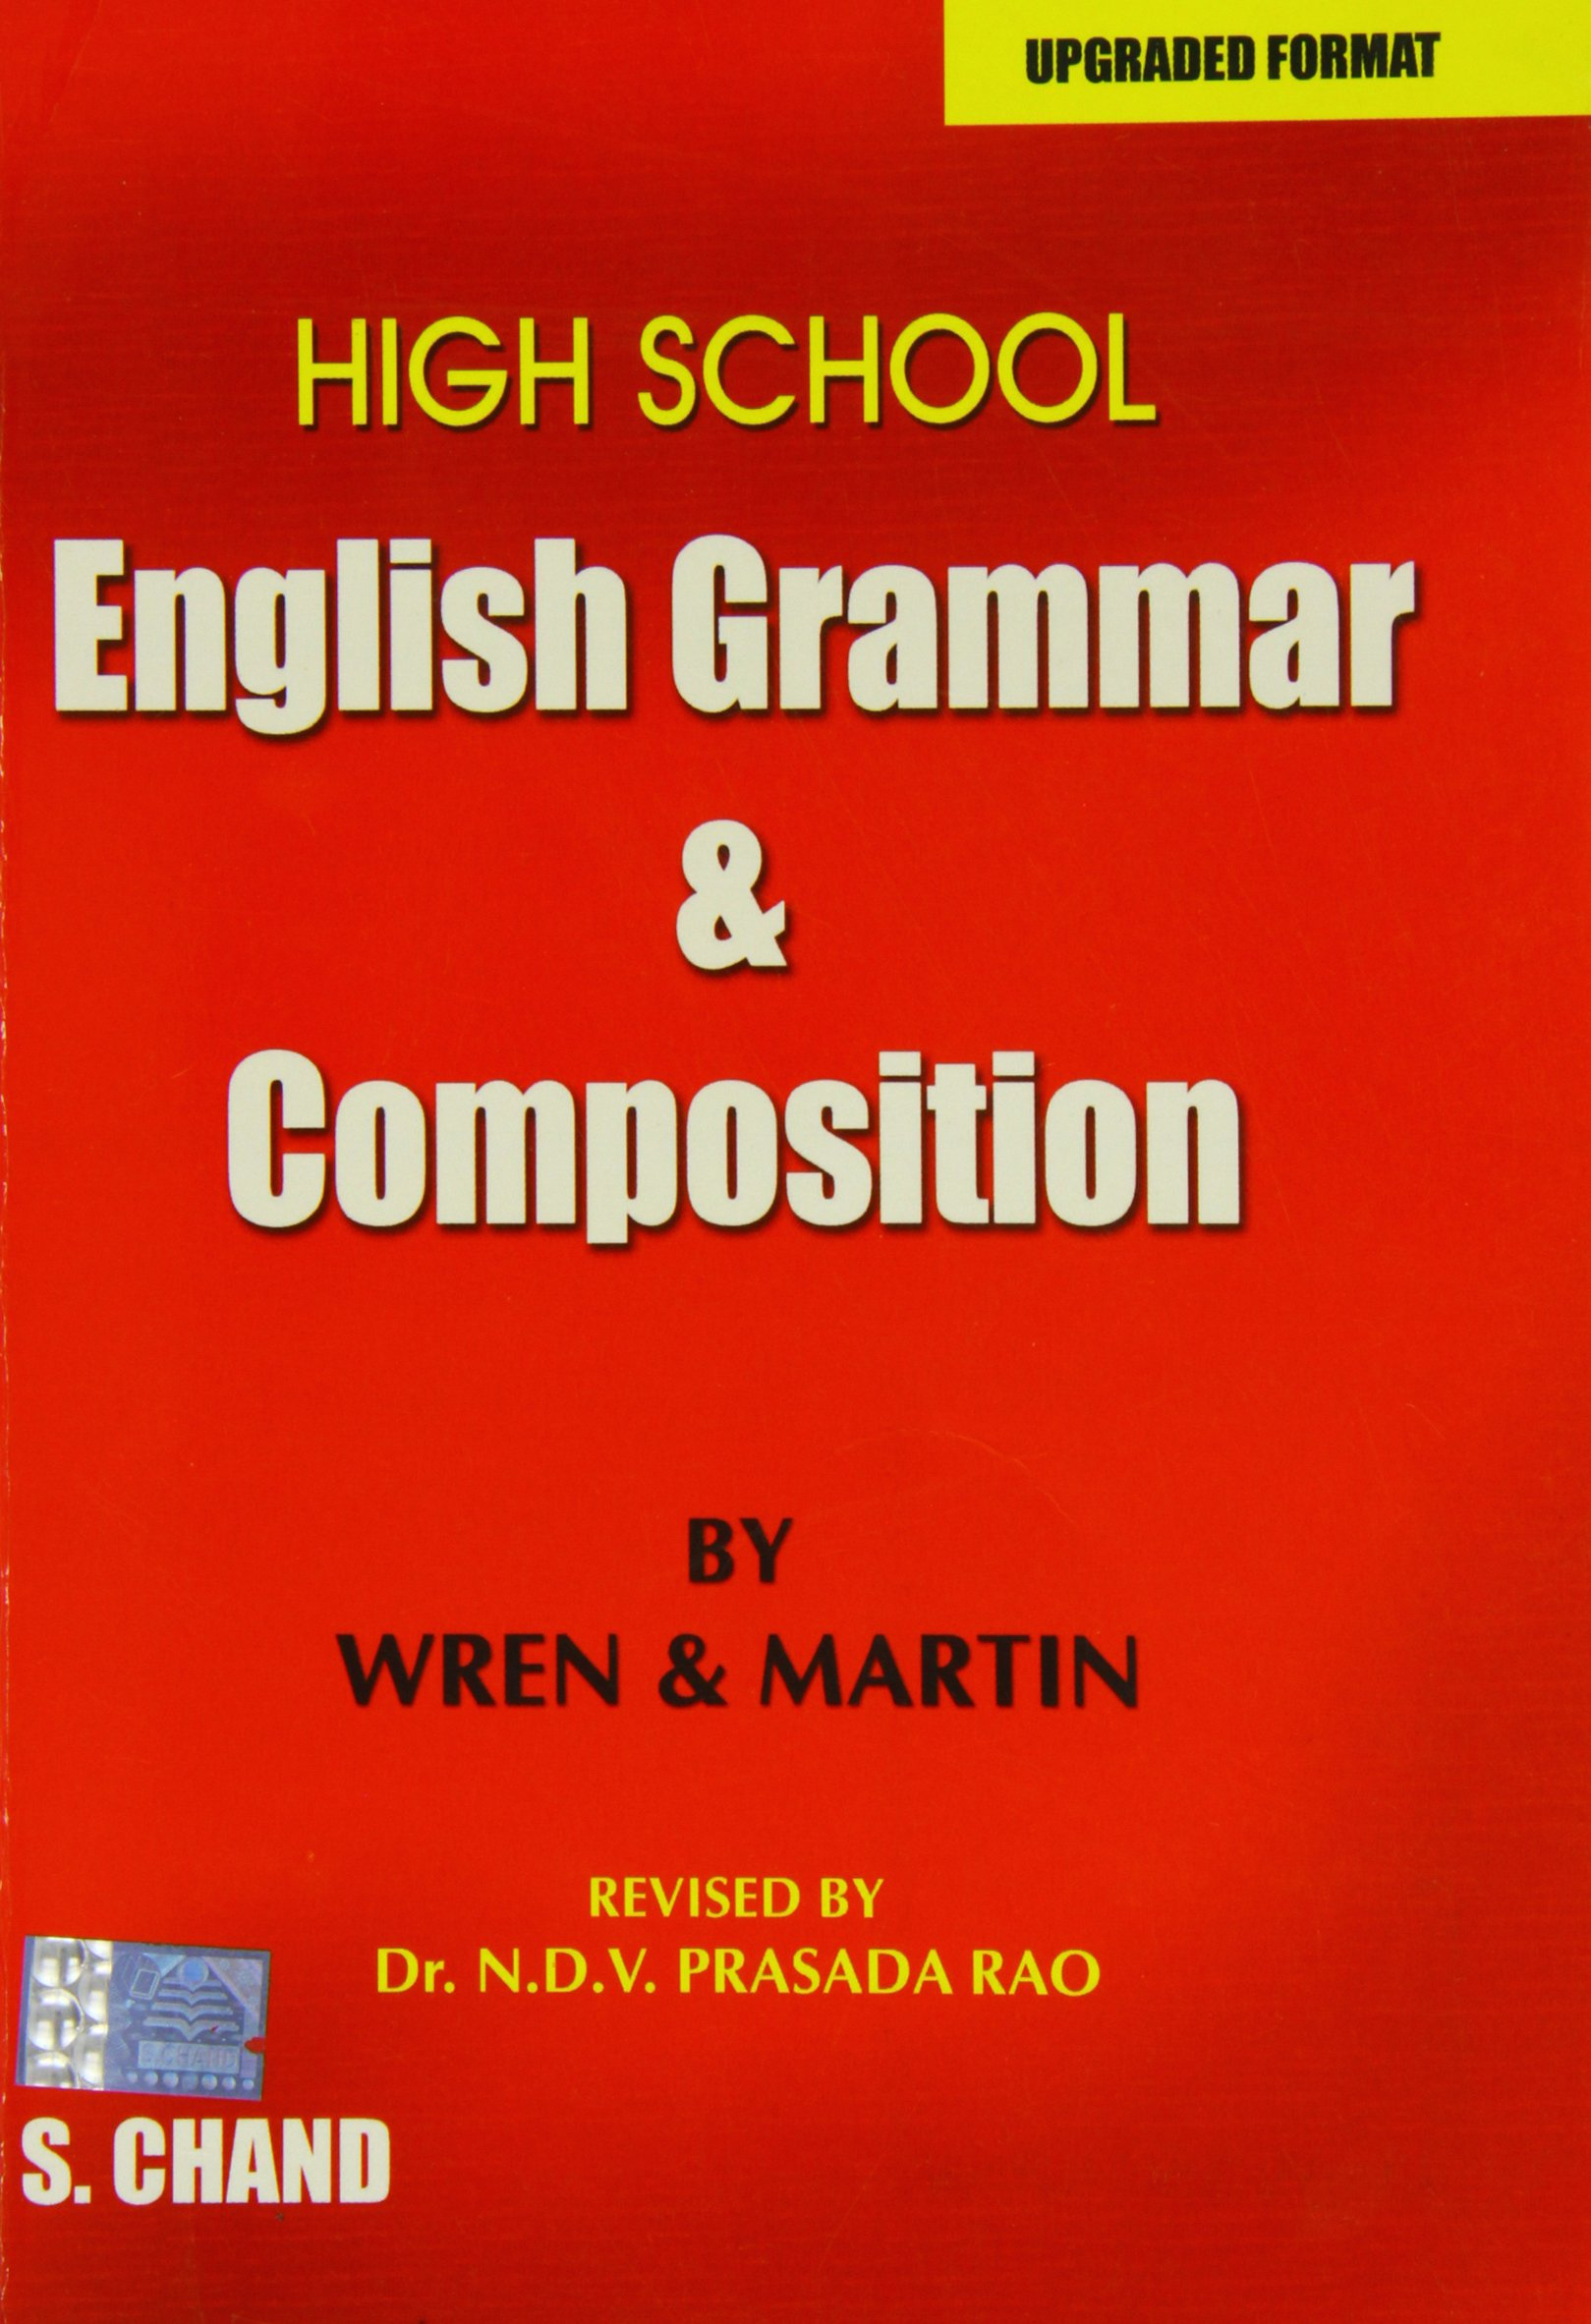 Buy high school english grammar and composition old edition book buy high school english grammar and composition old edition book online at low prices in india high school english grammar and composition old edition fandeluxe Images